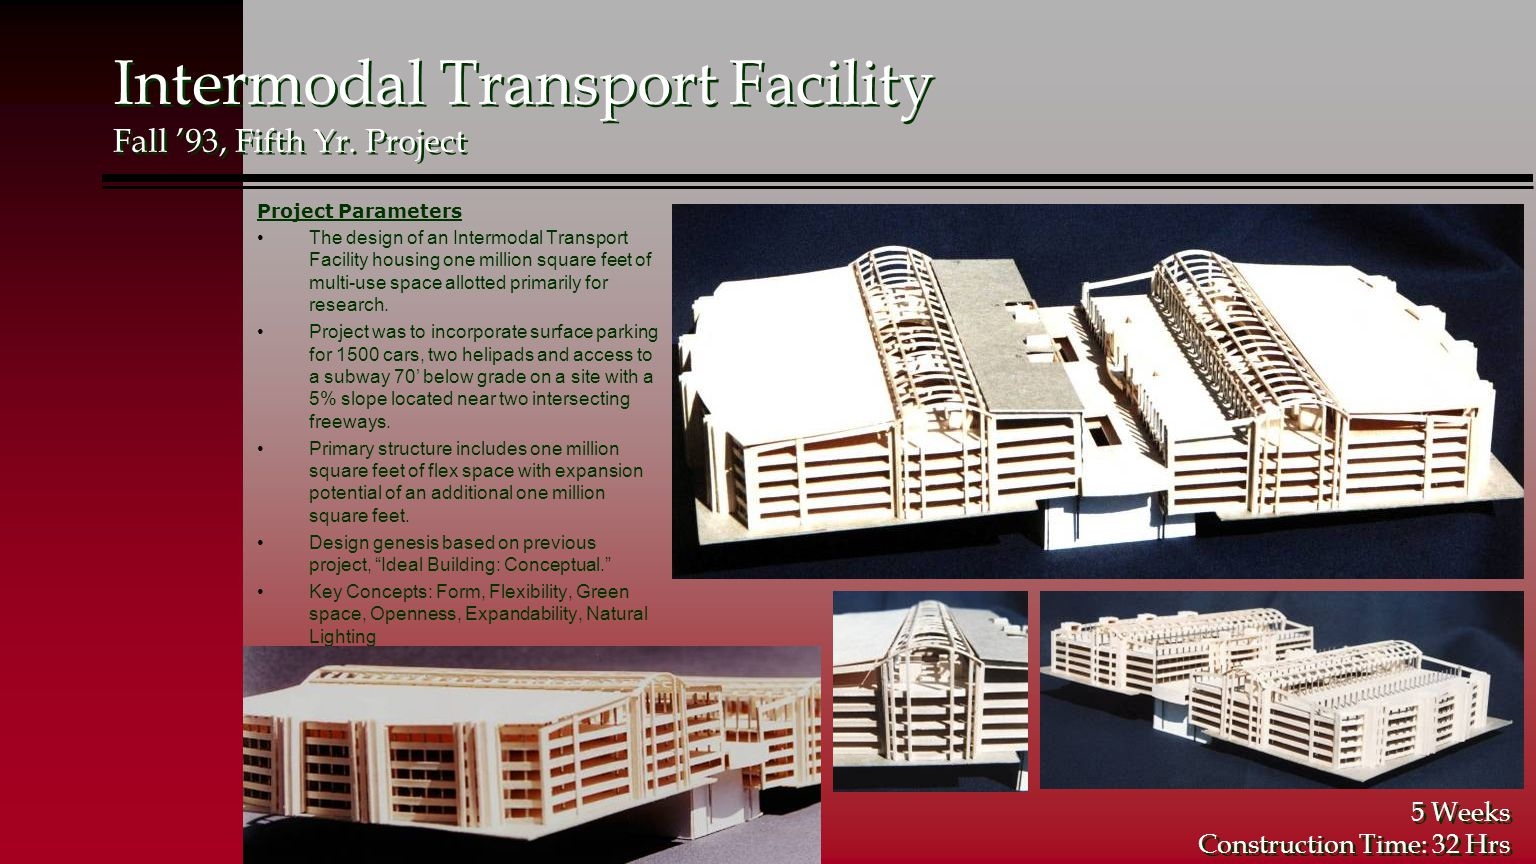 Project Parameters The design of an Intermodal Transport Facility housing one million square feet of multi-use space allotted primarily for research.